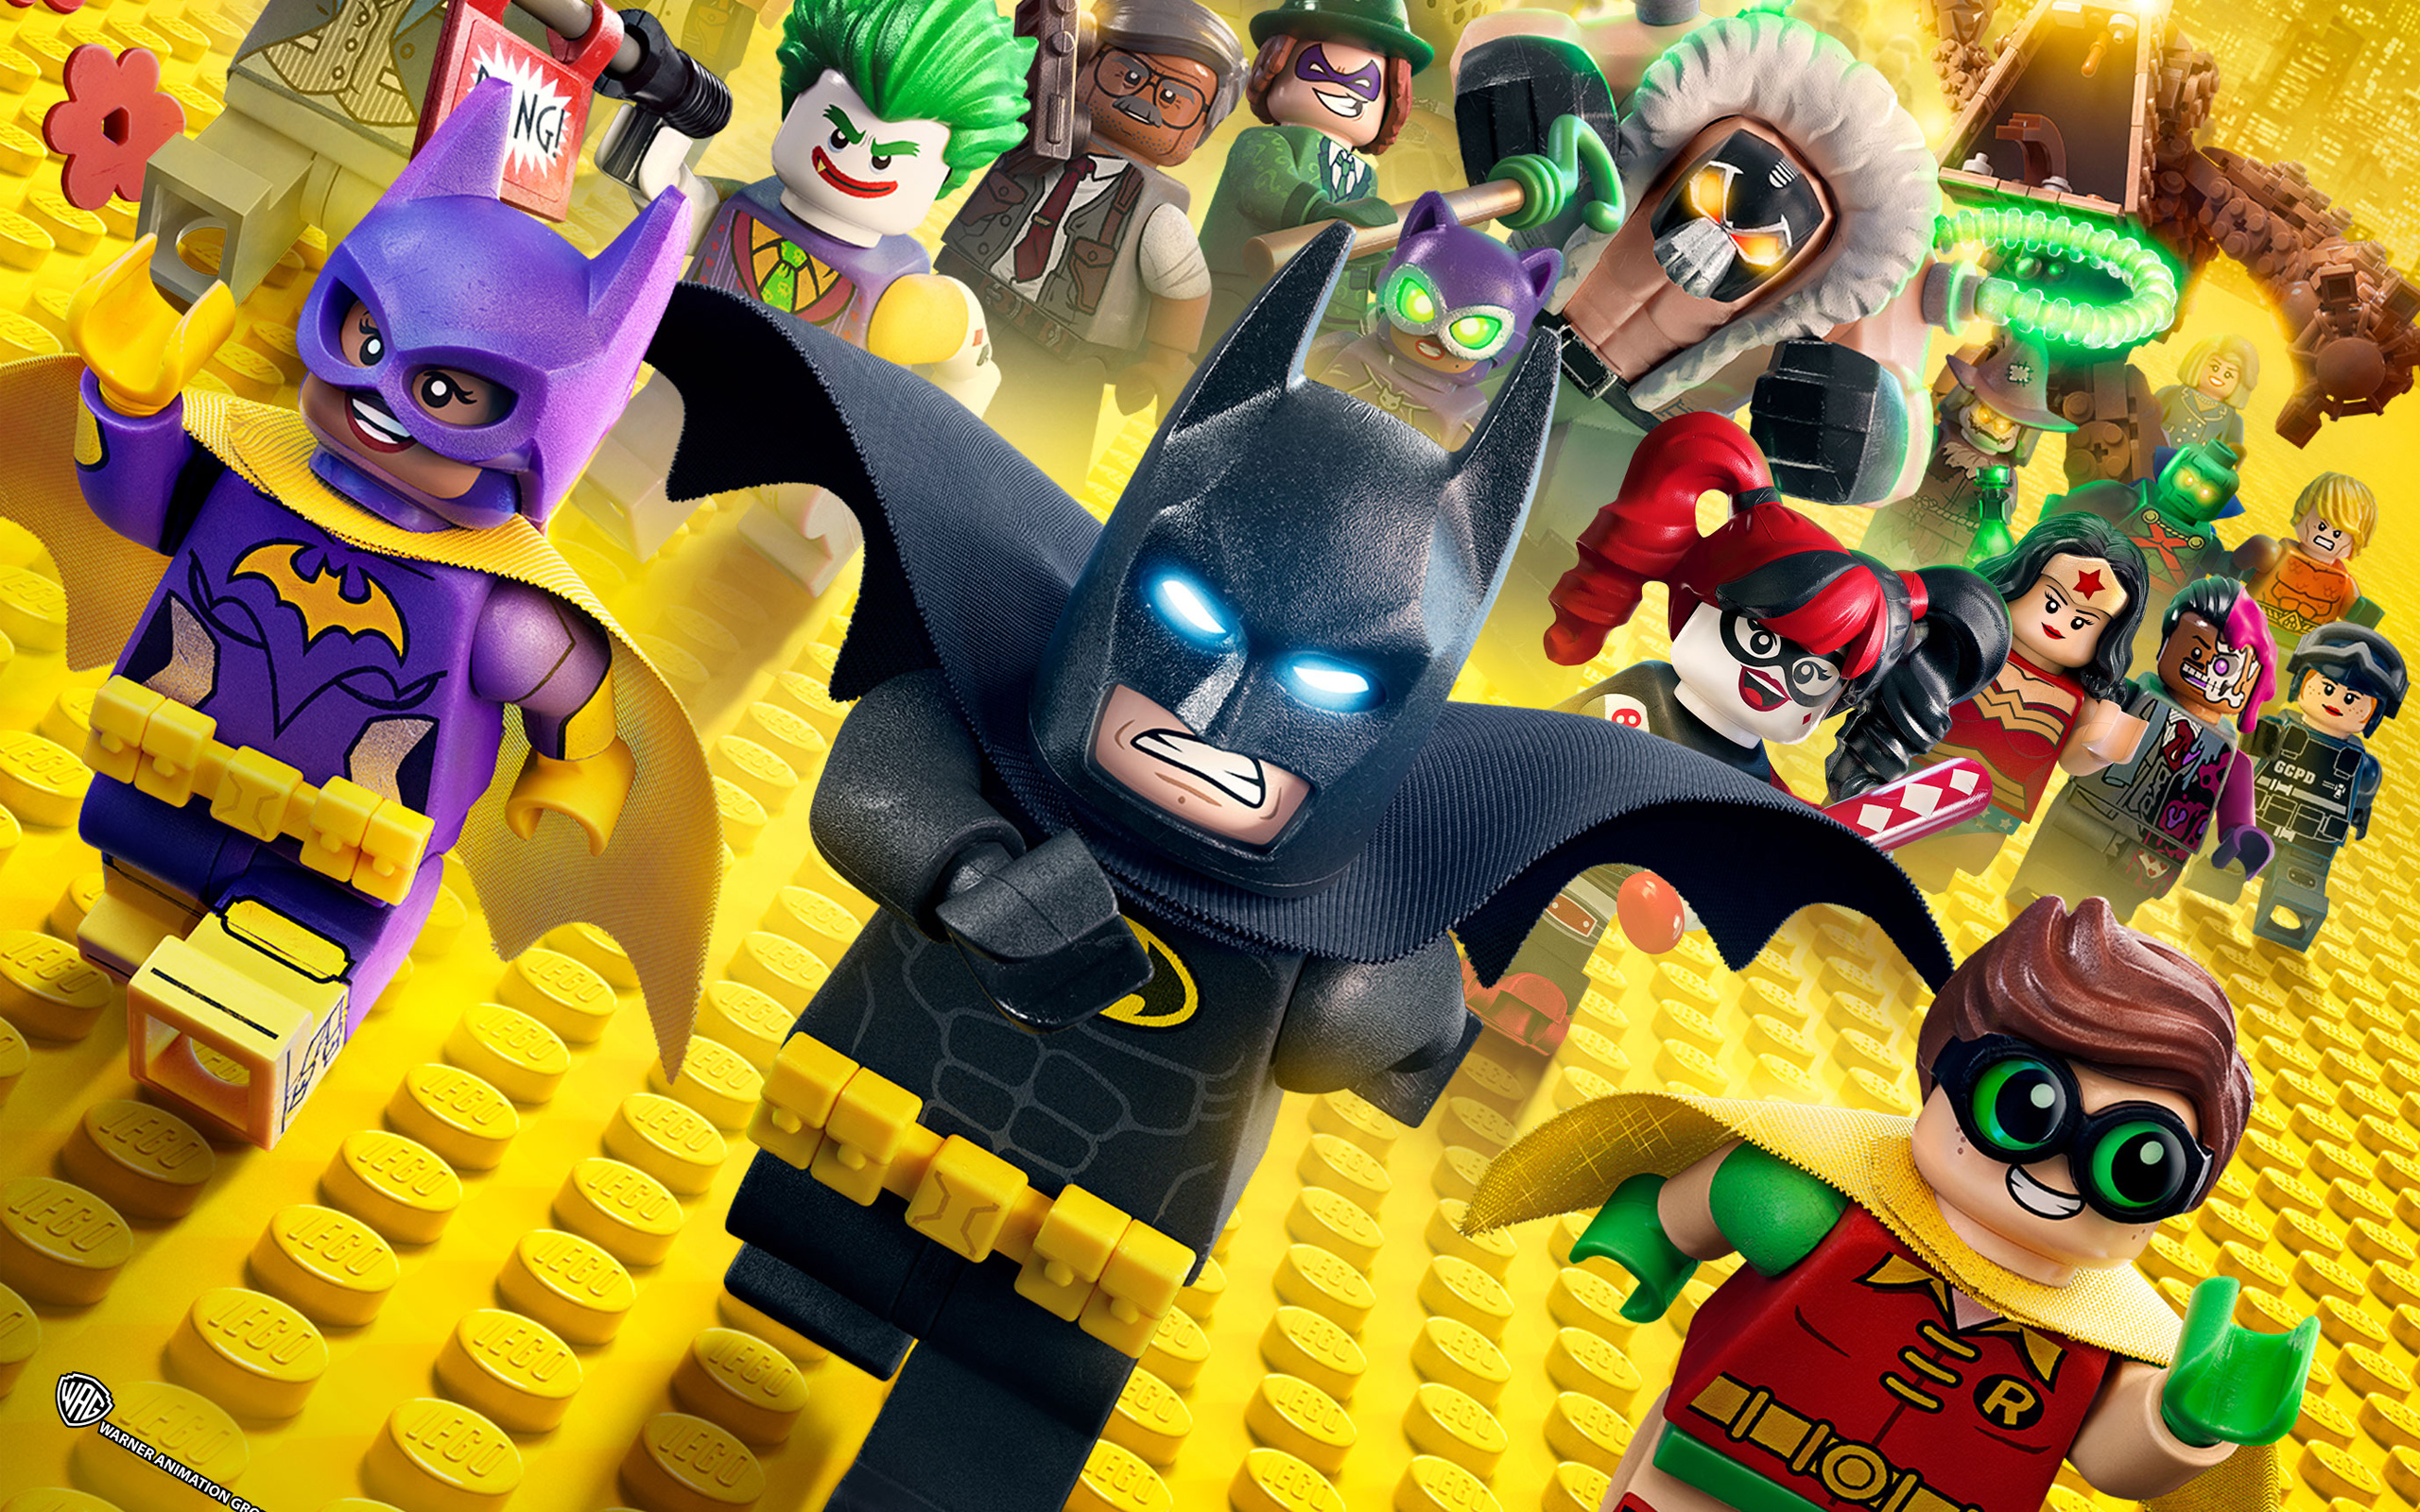 The Lego Batman Movie Animation HD wallpaper